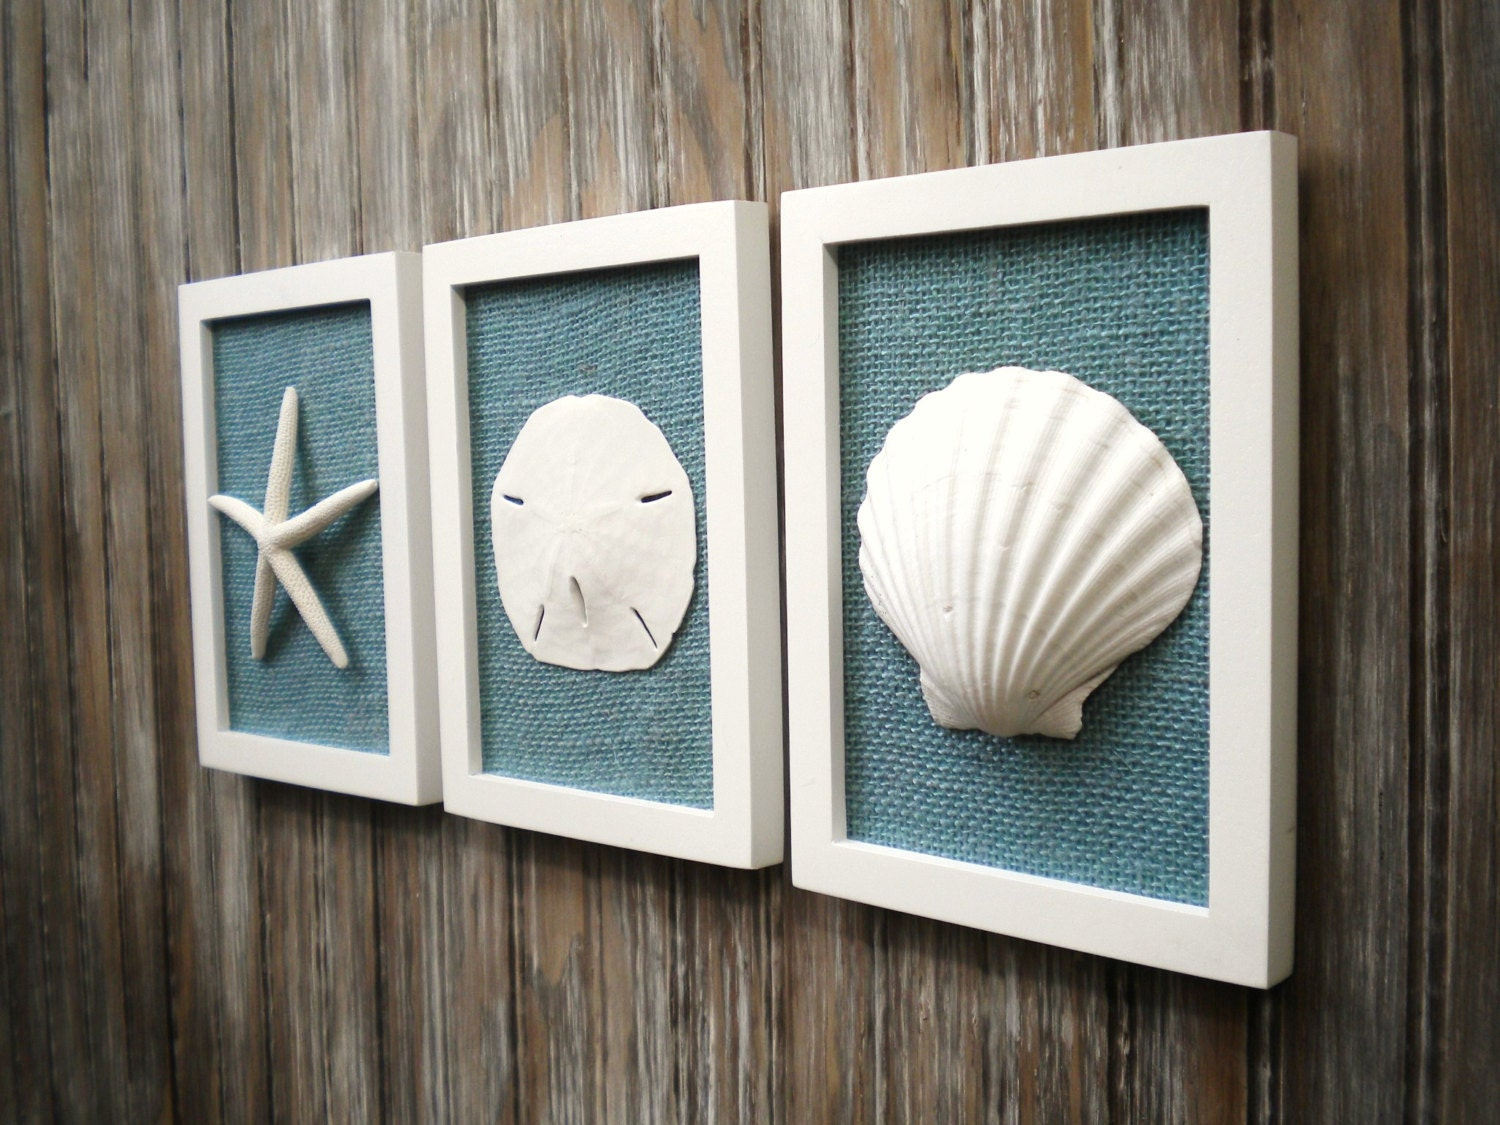 Cottage chic set of beach decor wall art nautical decor for Coastal wall decor ideas